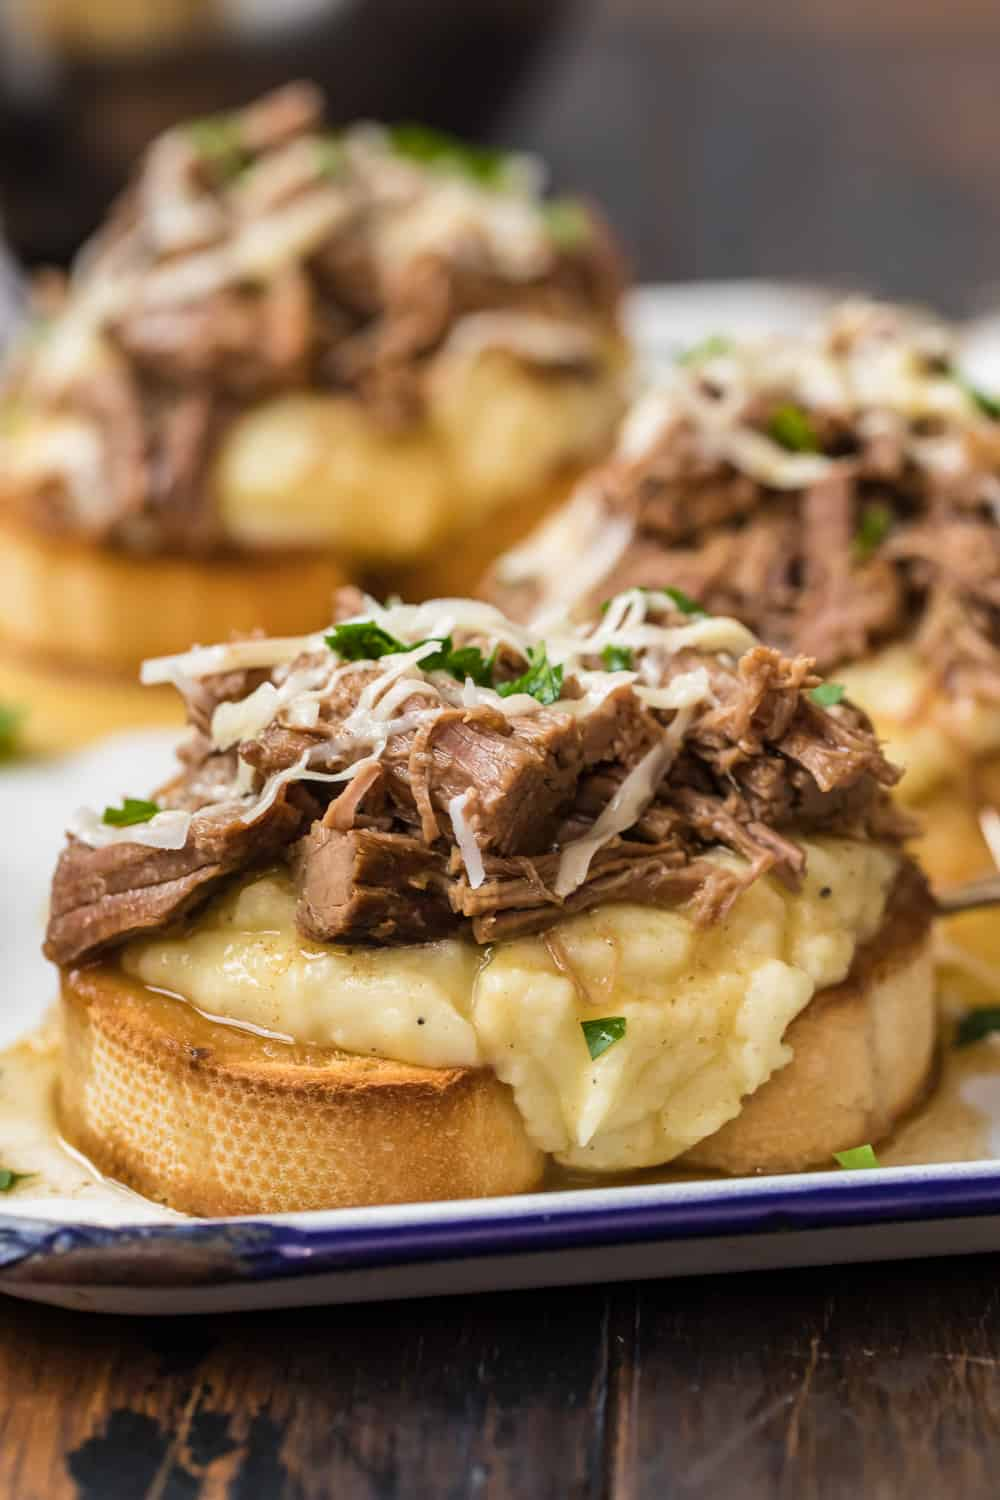 Open Faced Roast Beef Sandwich on a blue and white plate.